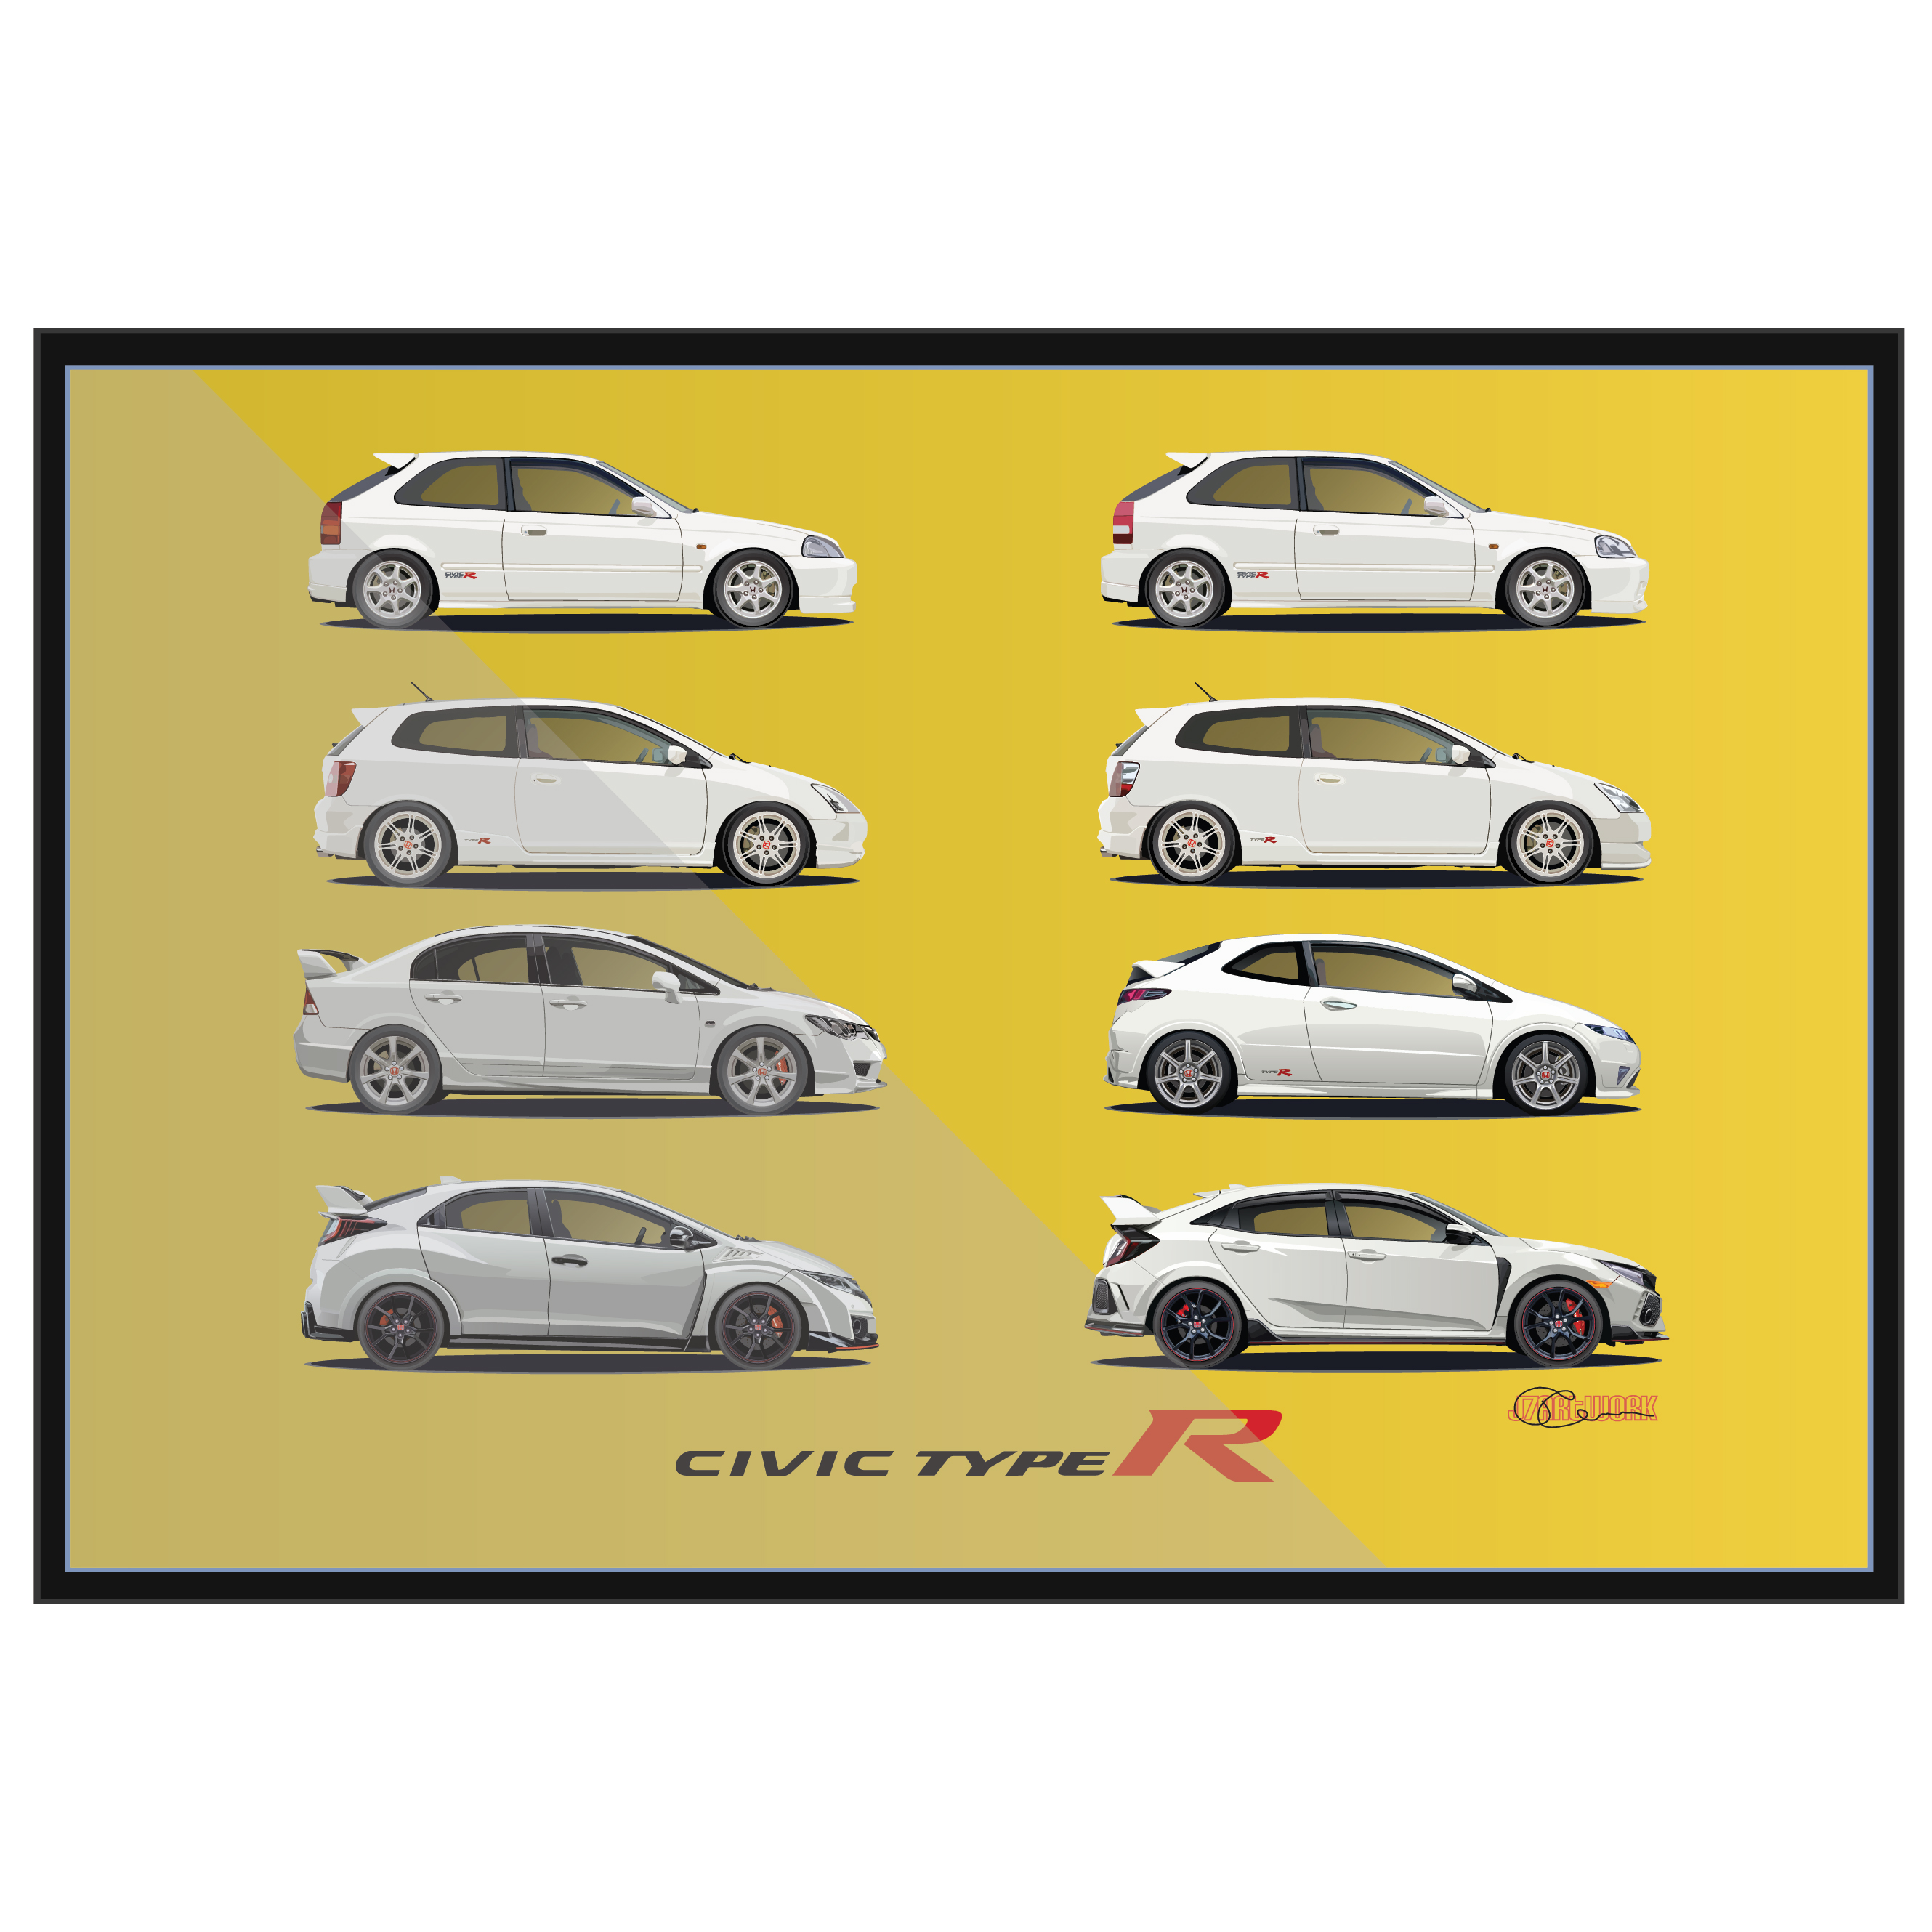 Civic Type R white with yellow (EK9, EP3, FN2, FD2, FK2, FK8) – J7Artwork